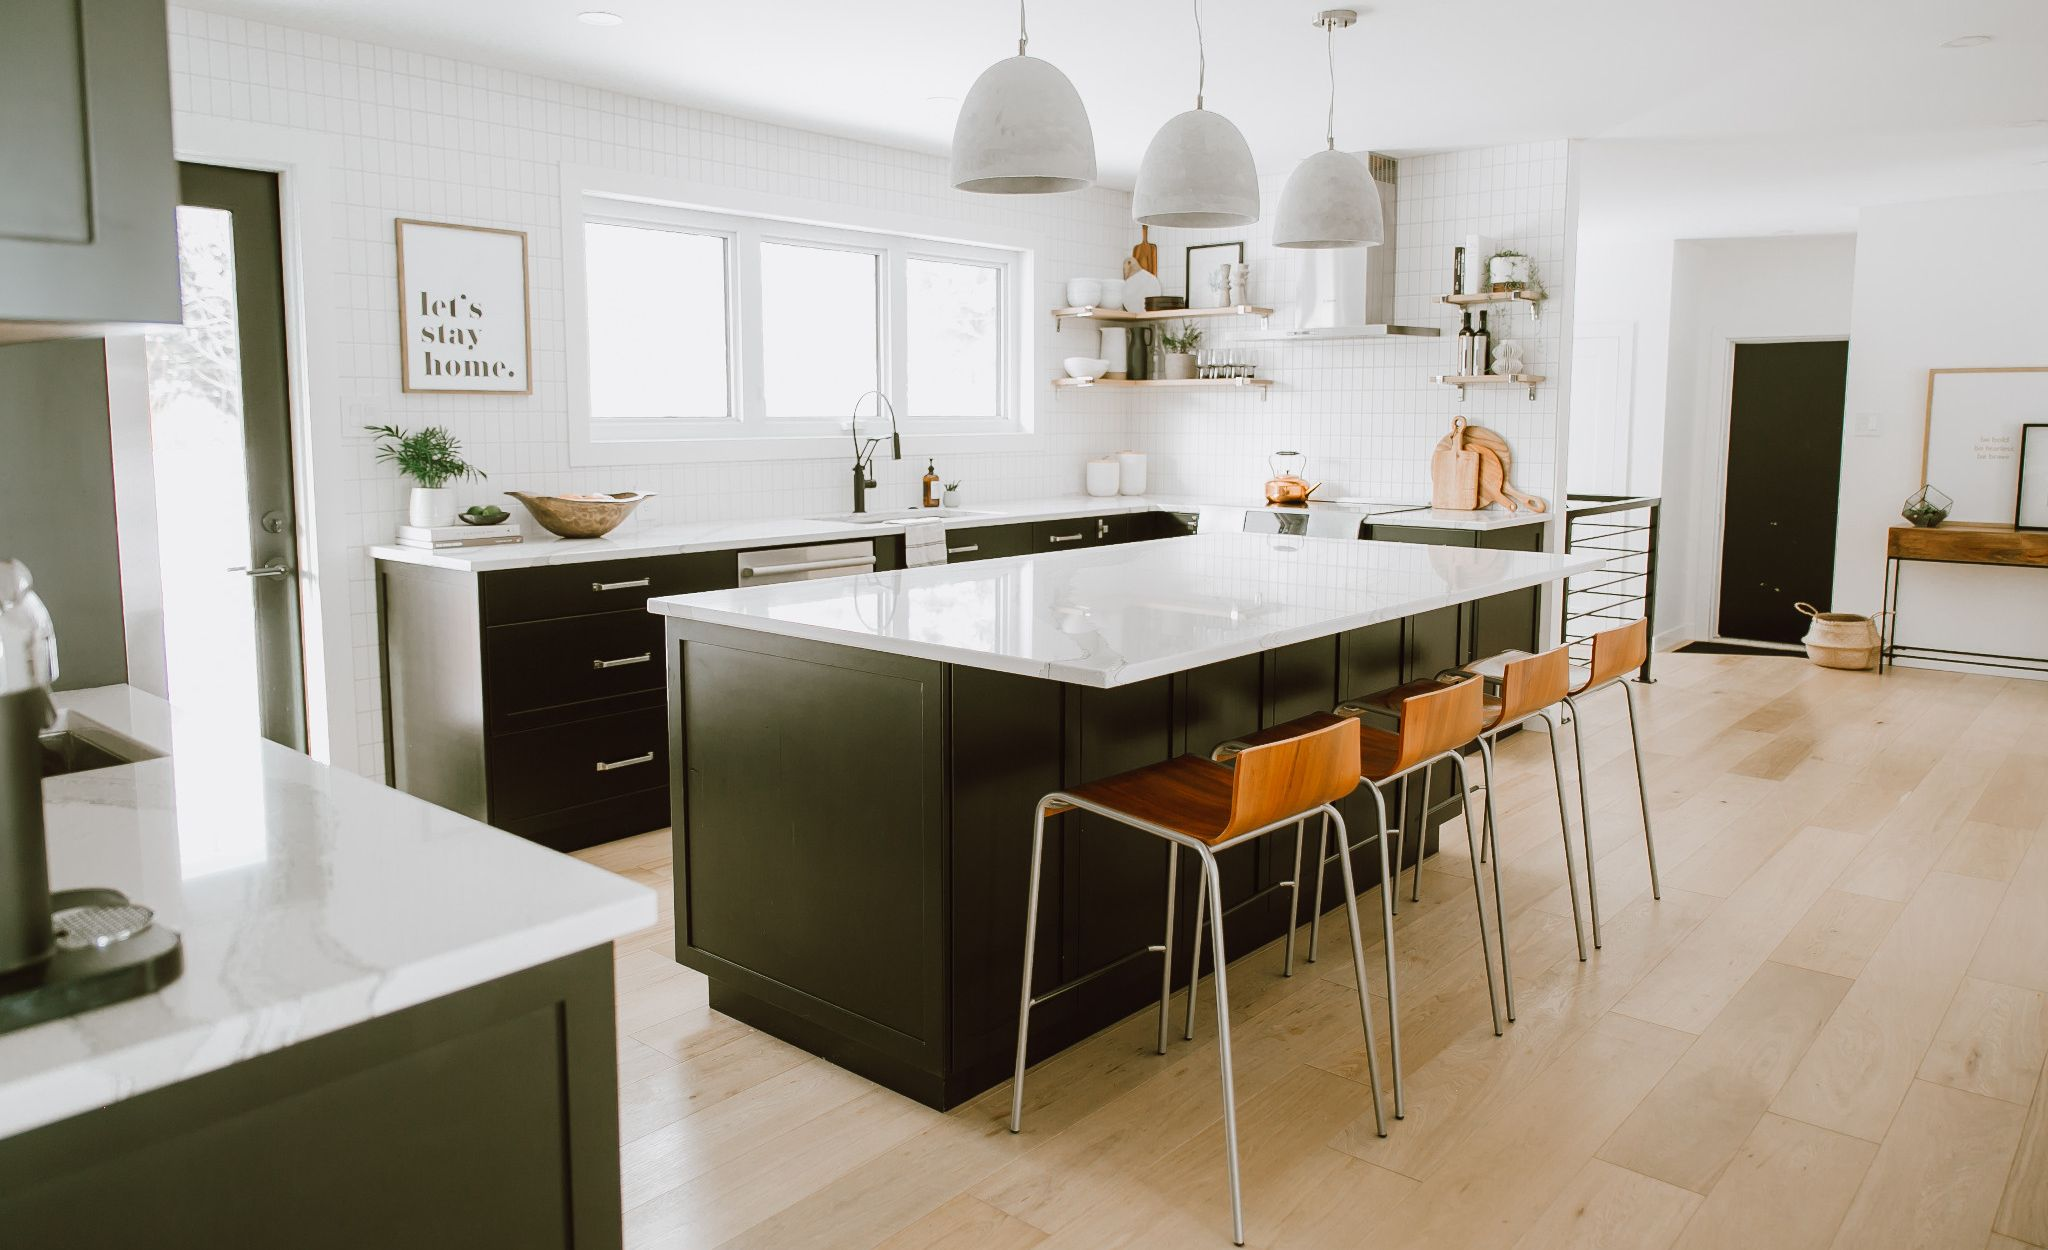 Light wood flooring and Brittanicca countertops create an open, airy feel.